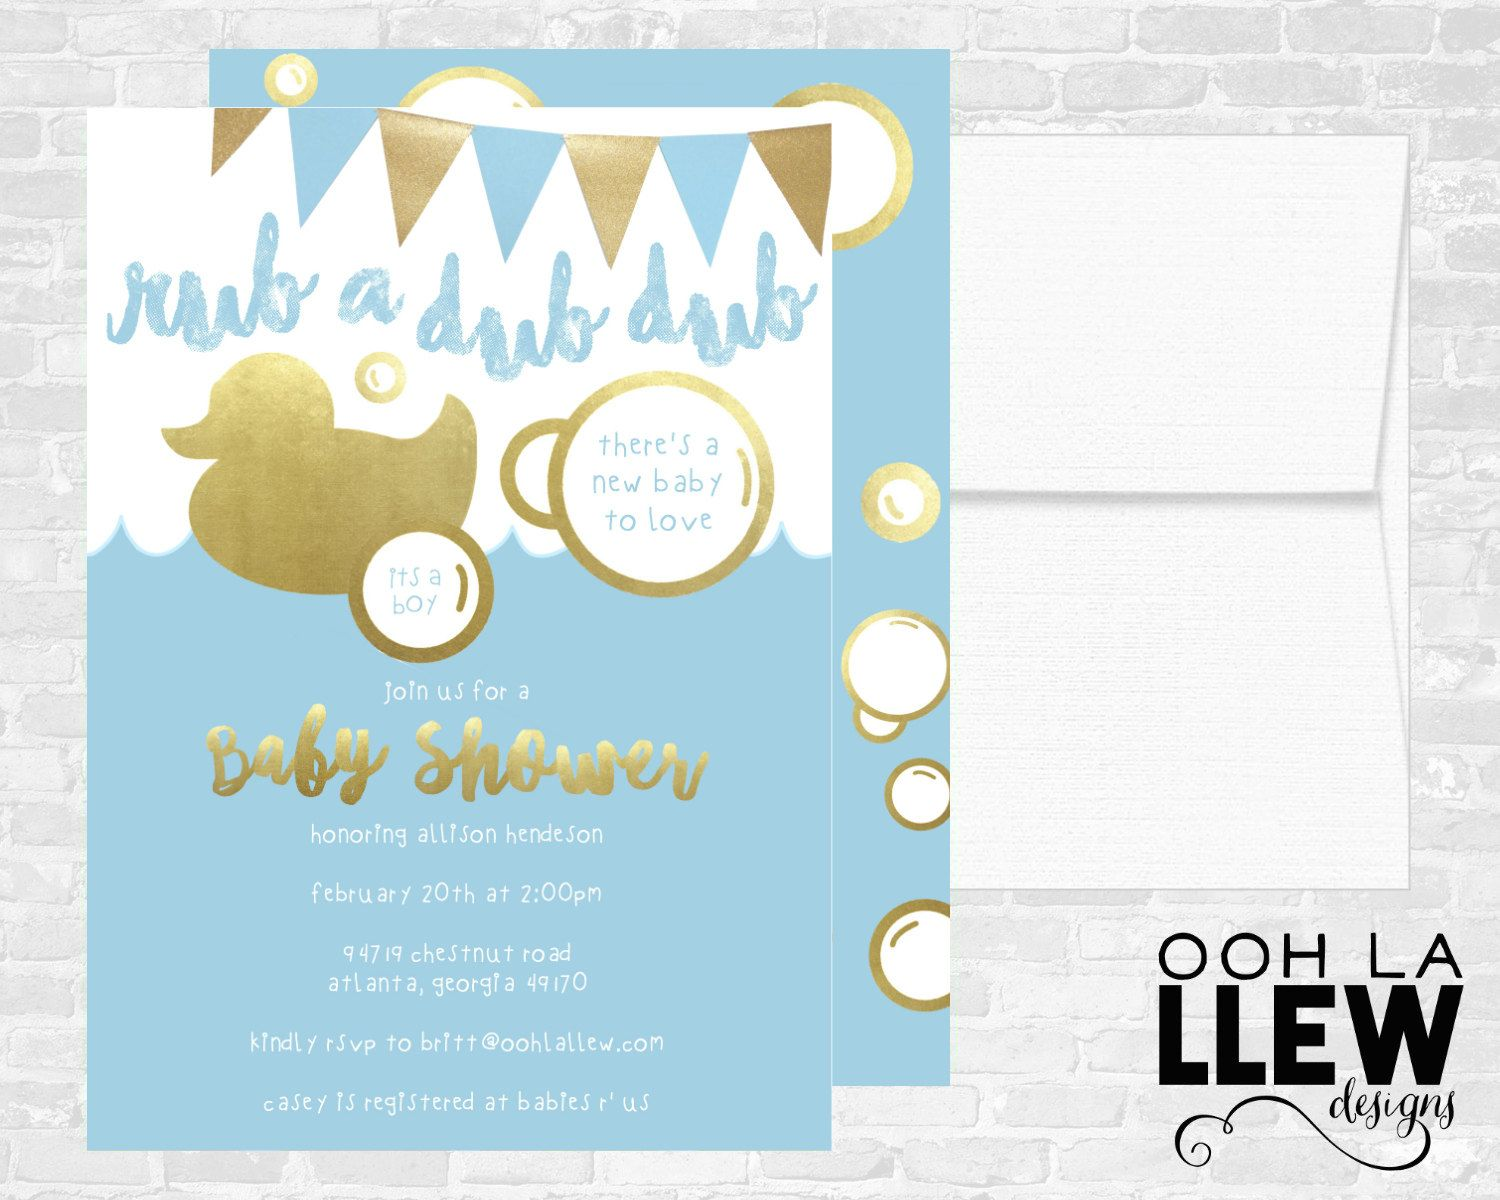 Baby Shower Invitation, Rubber Duck Baby Shower Invitation, Gold ...